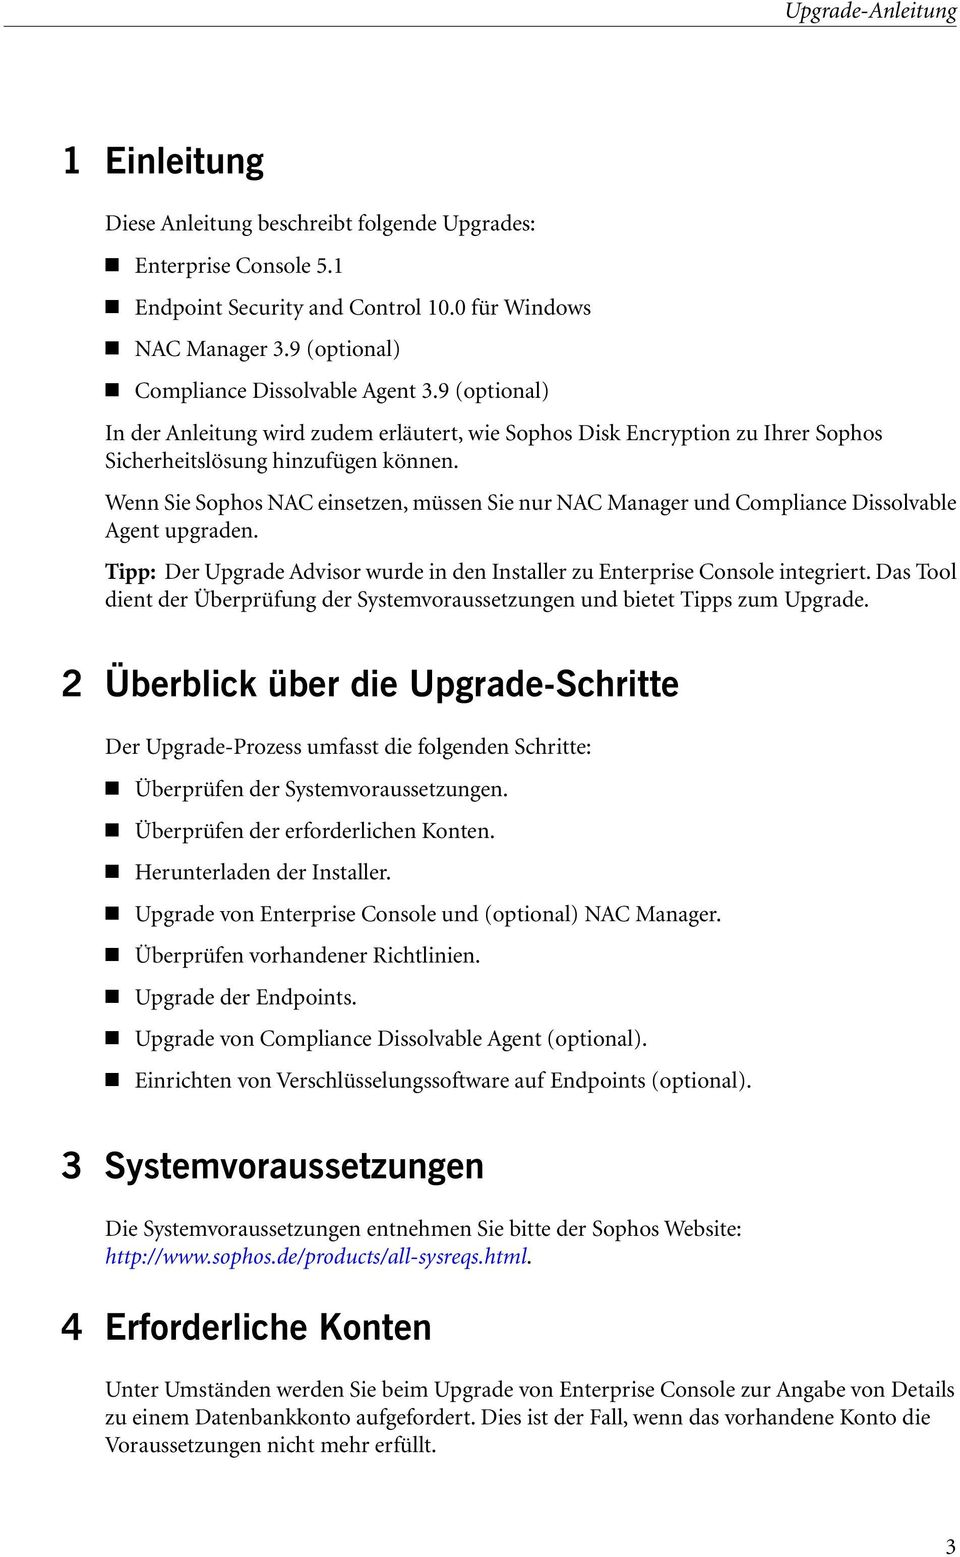 Wenn Sie Sophos NAC einsetzen, müssen Sie nur NAC Manager und Compliance Dissolvable Agent upgraden. Tipp: Der Upgrade Advisor wurde in den Installer zu Enterprise Console integriert.